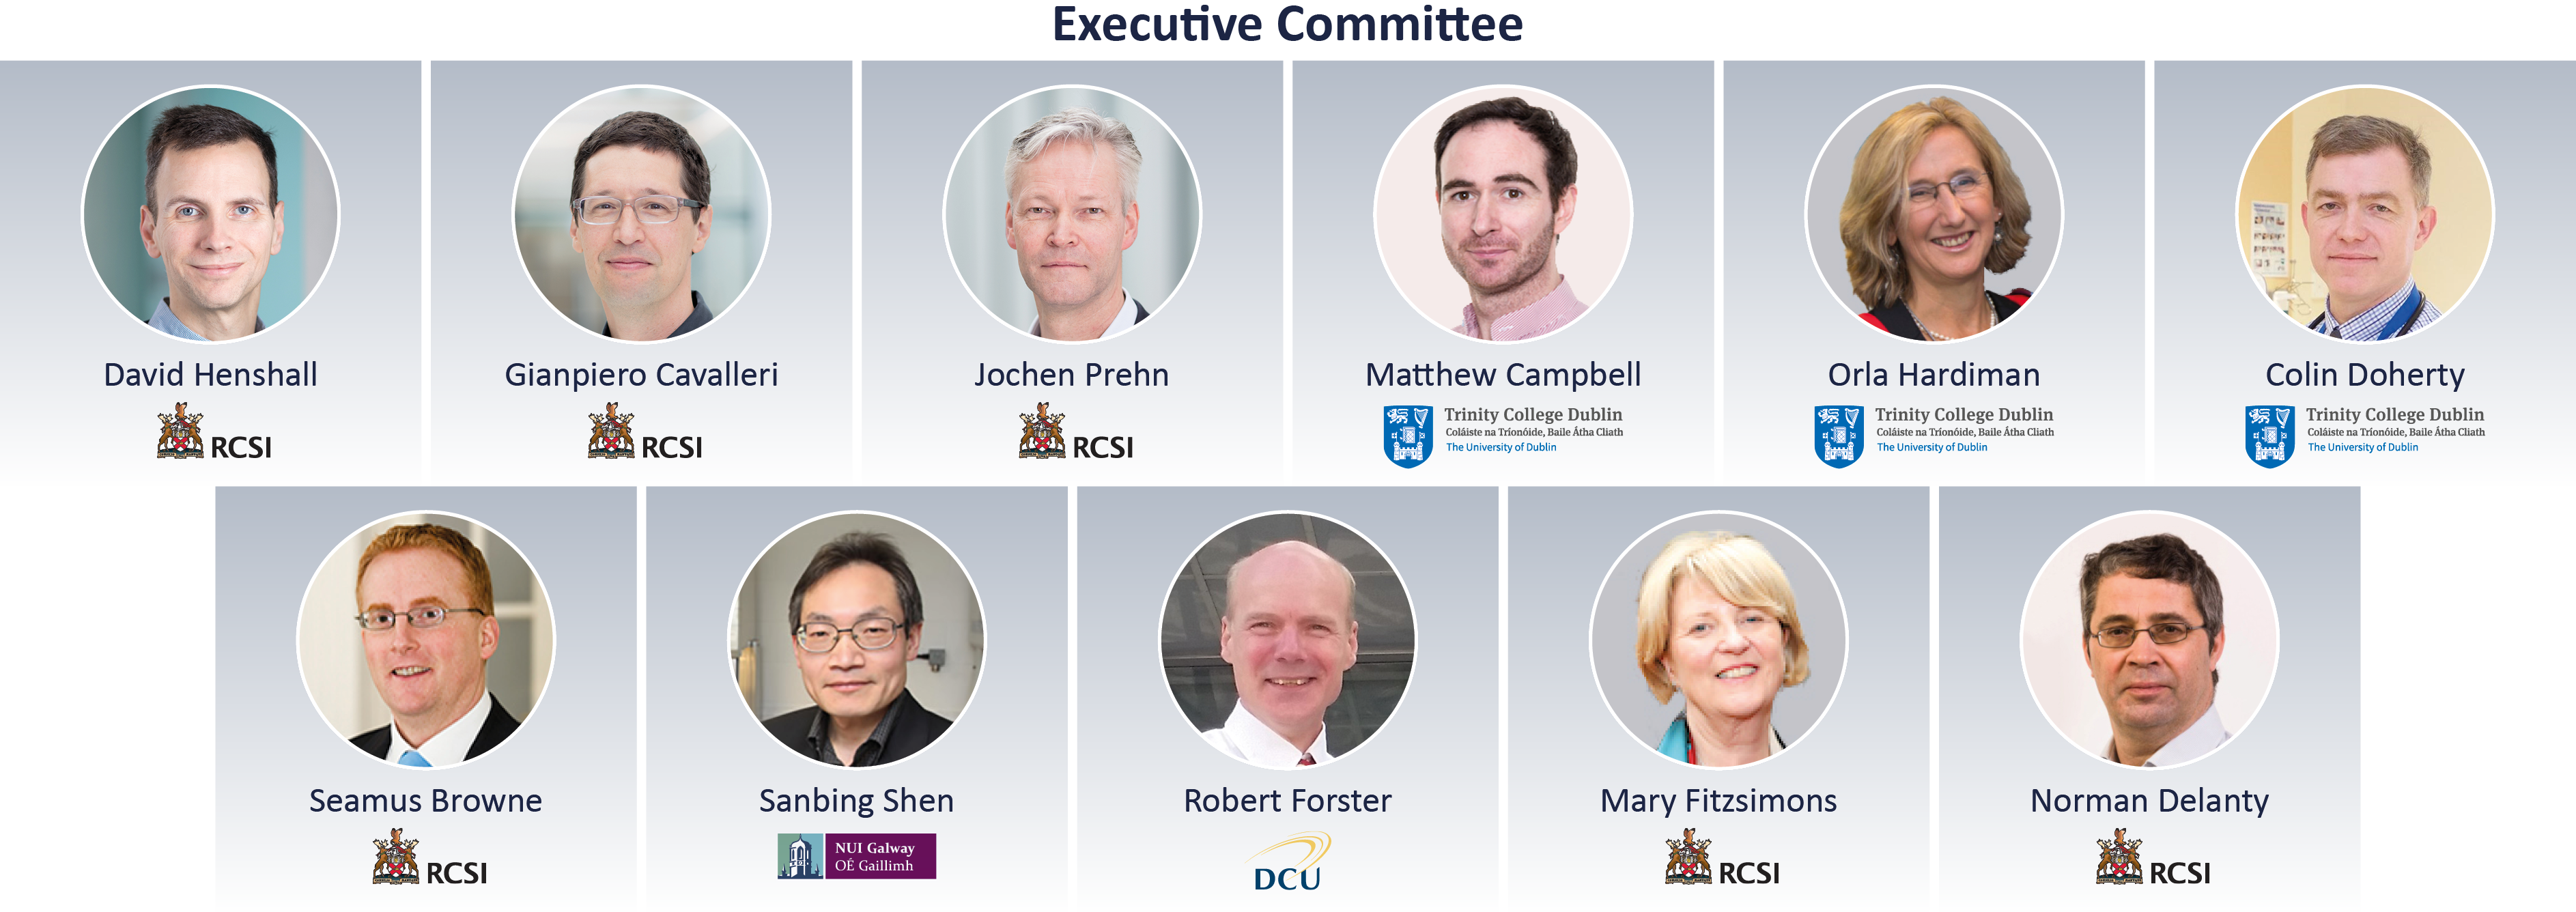 FutureNeuro Executive Committee